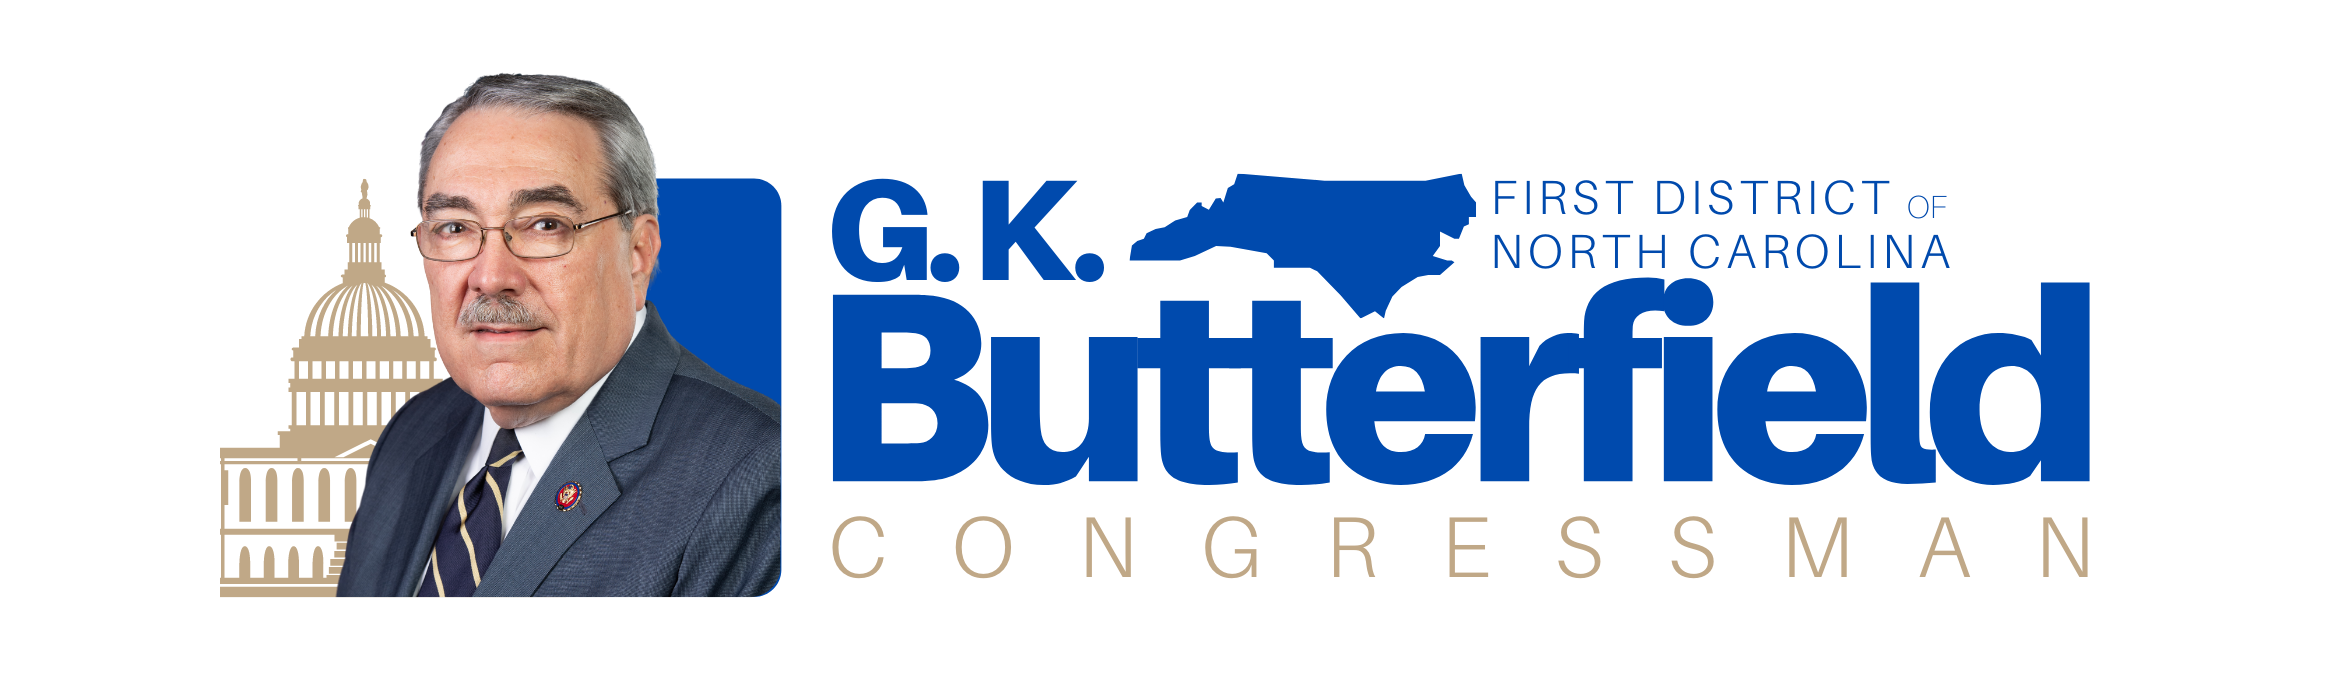 Representative G. K. Butterfield